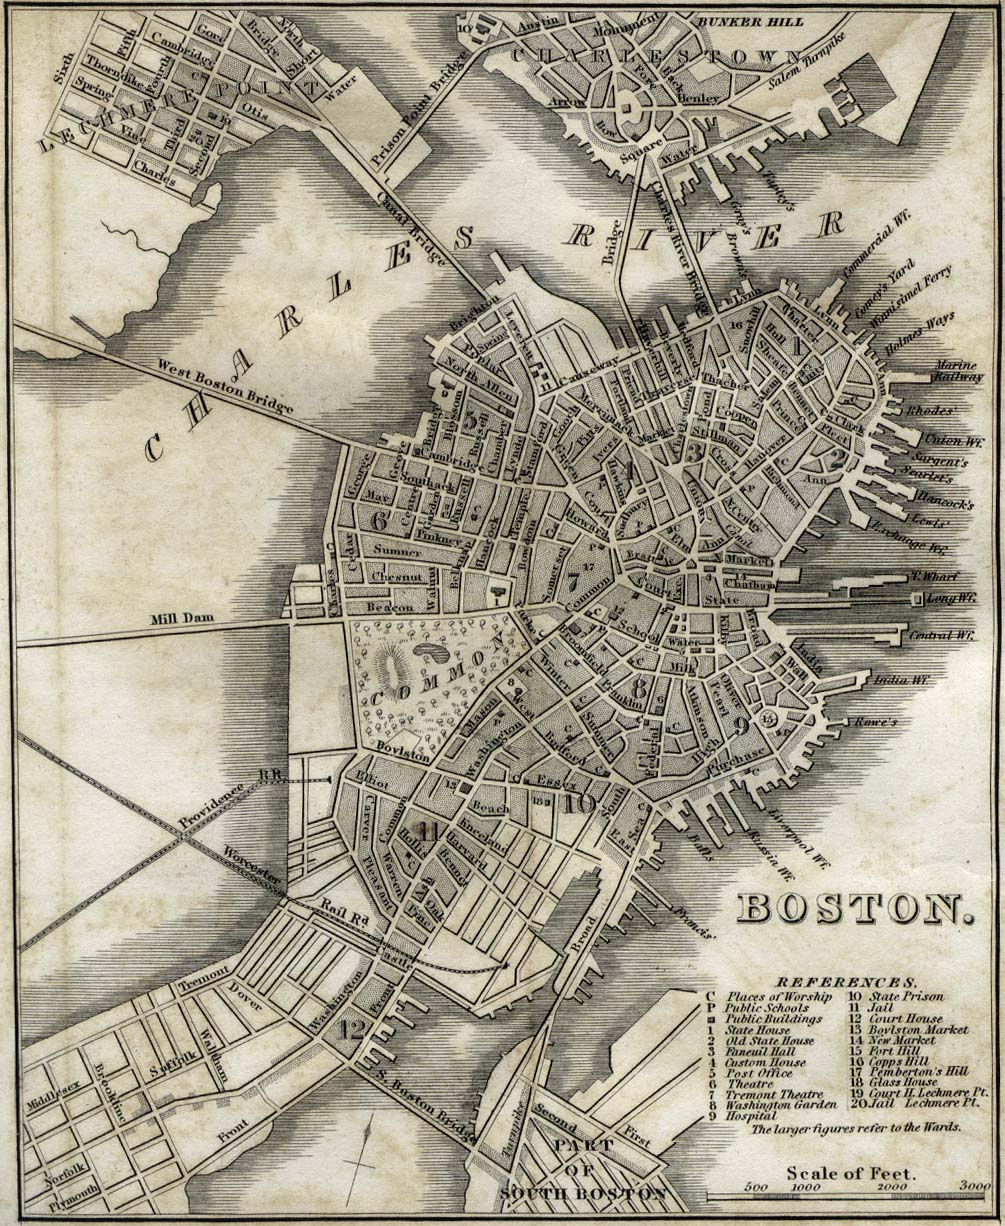 Boston City Map 1842